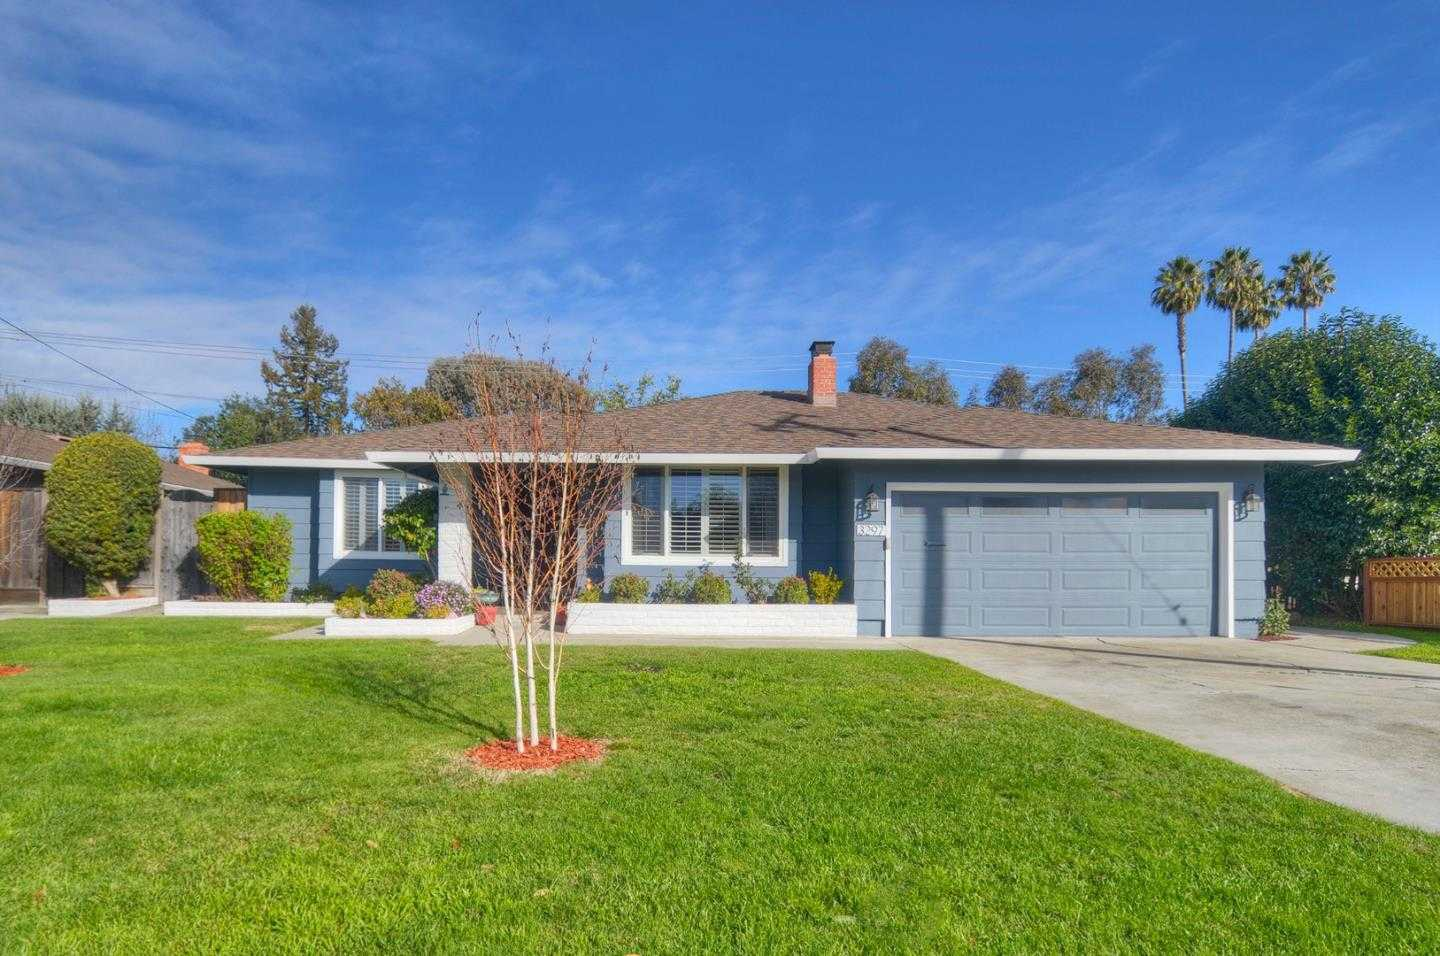 $1,595,000 - 4Br/2Ba -  for Sale in San Jose